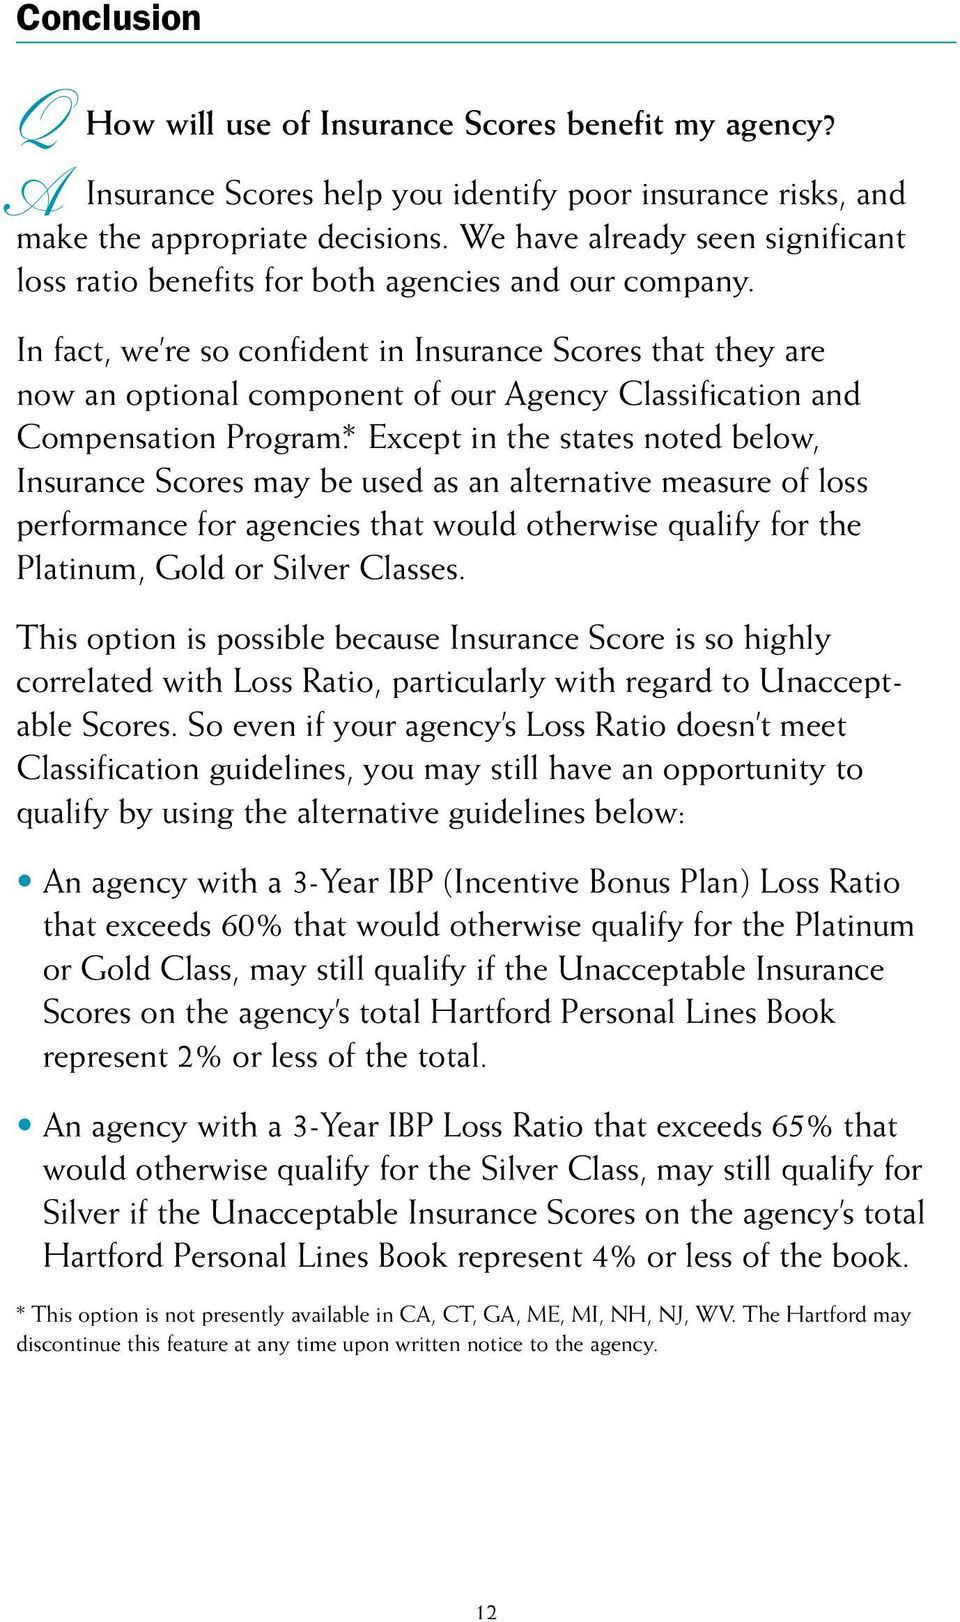 In fact, we re so confident in Insurance Scores that they are now an optional component of our gency Classification and Compensation Program*.